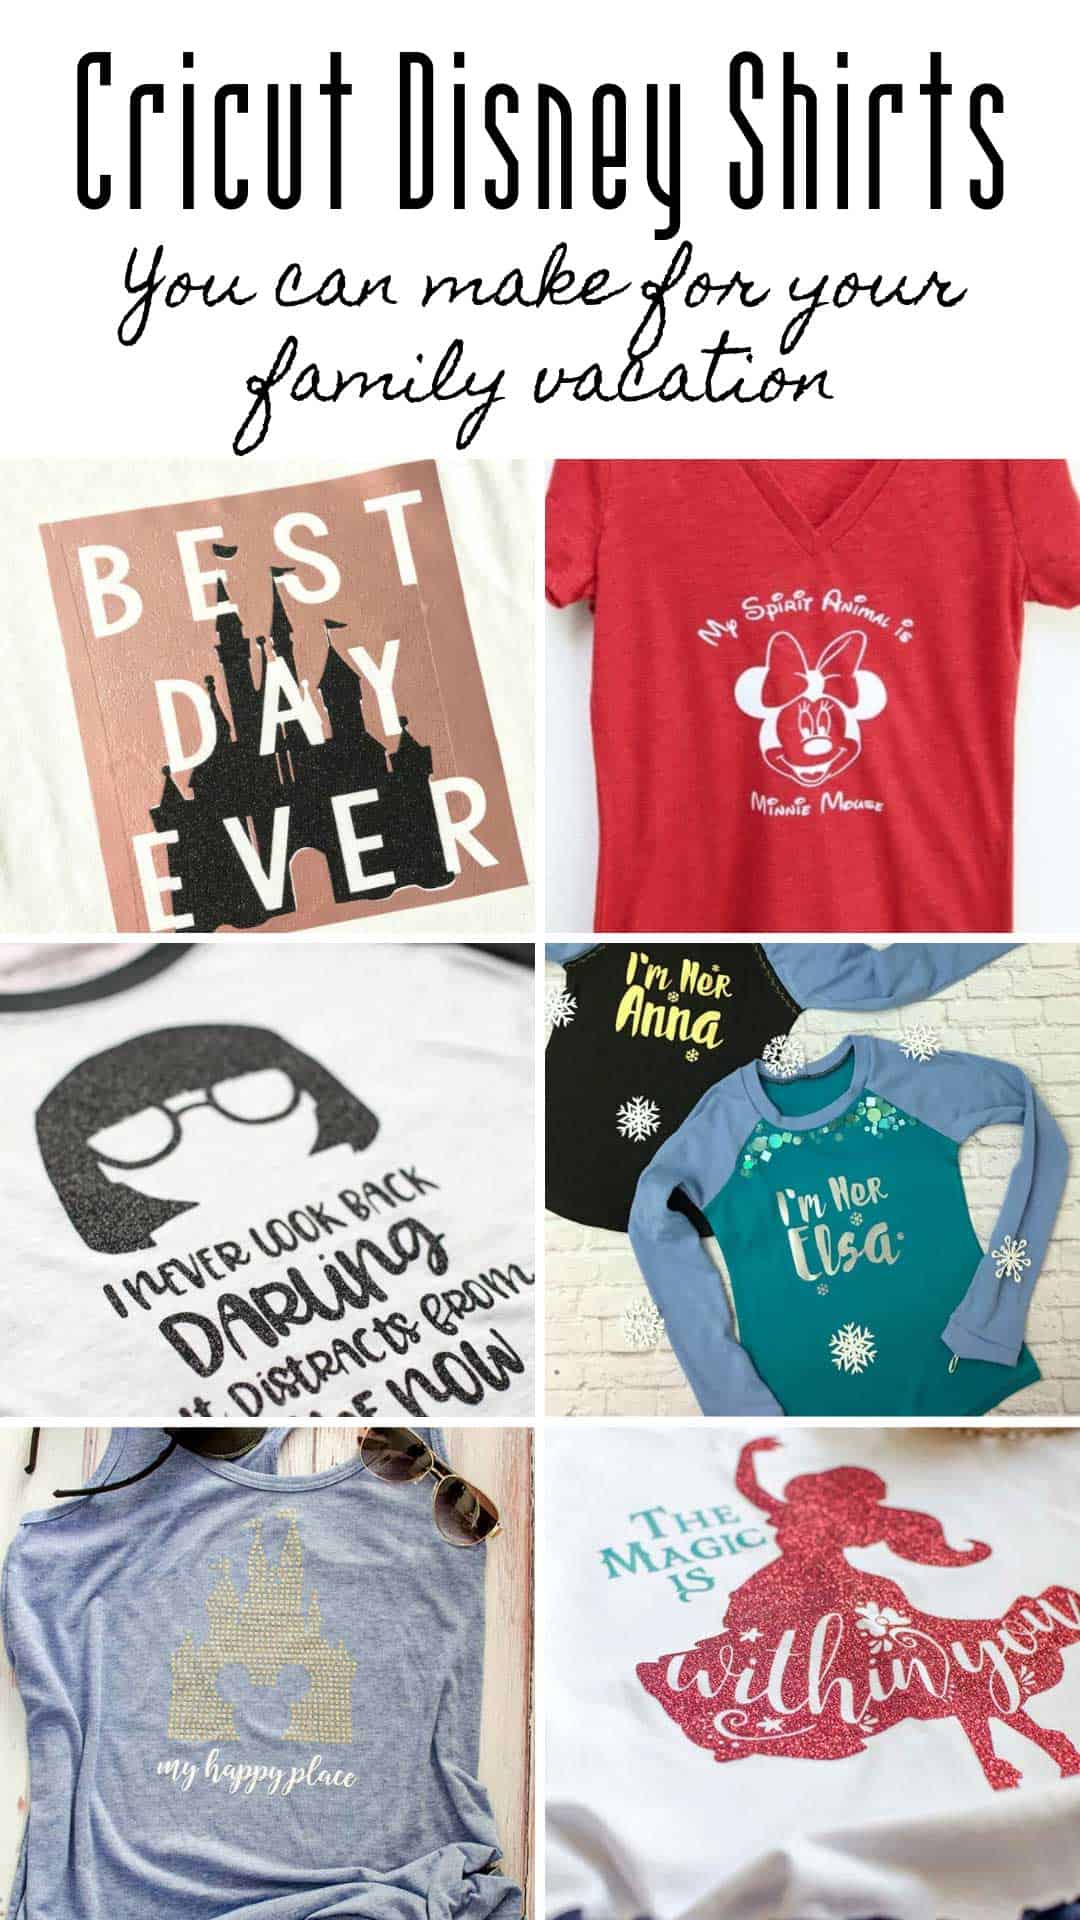 If you're looking for SVG files to make Silhouette or Cricut Disney Shirts you're in luck because we've got the best ones here!